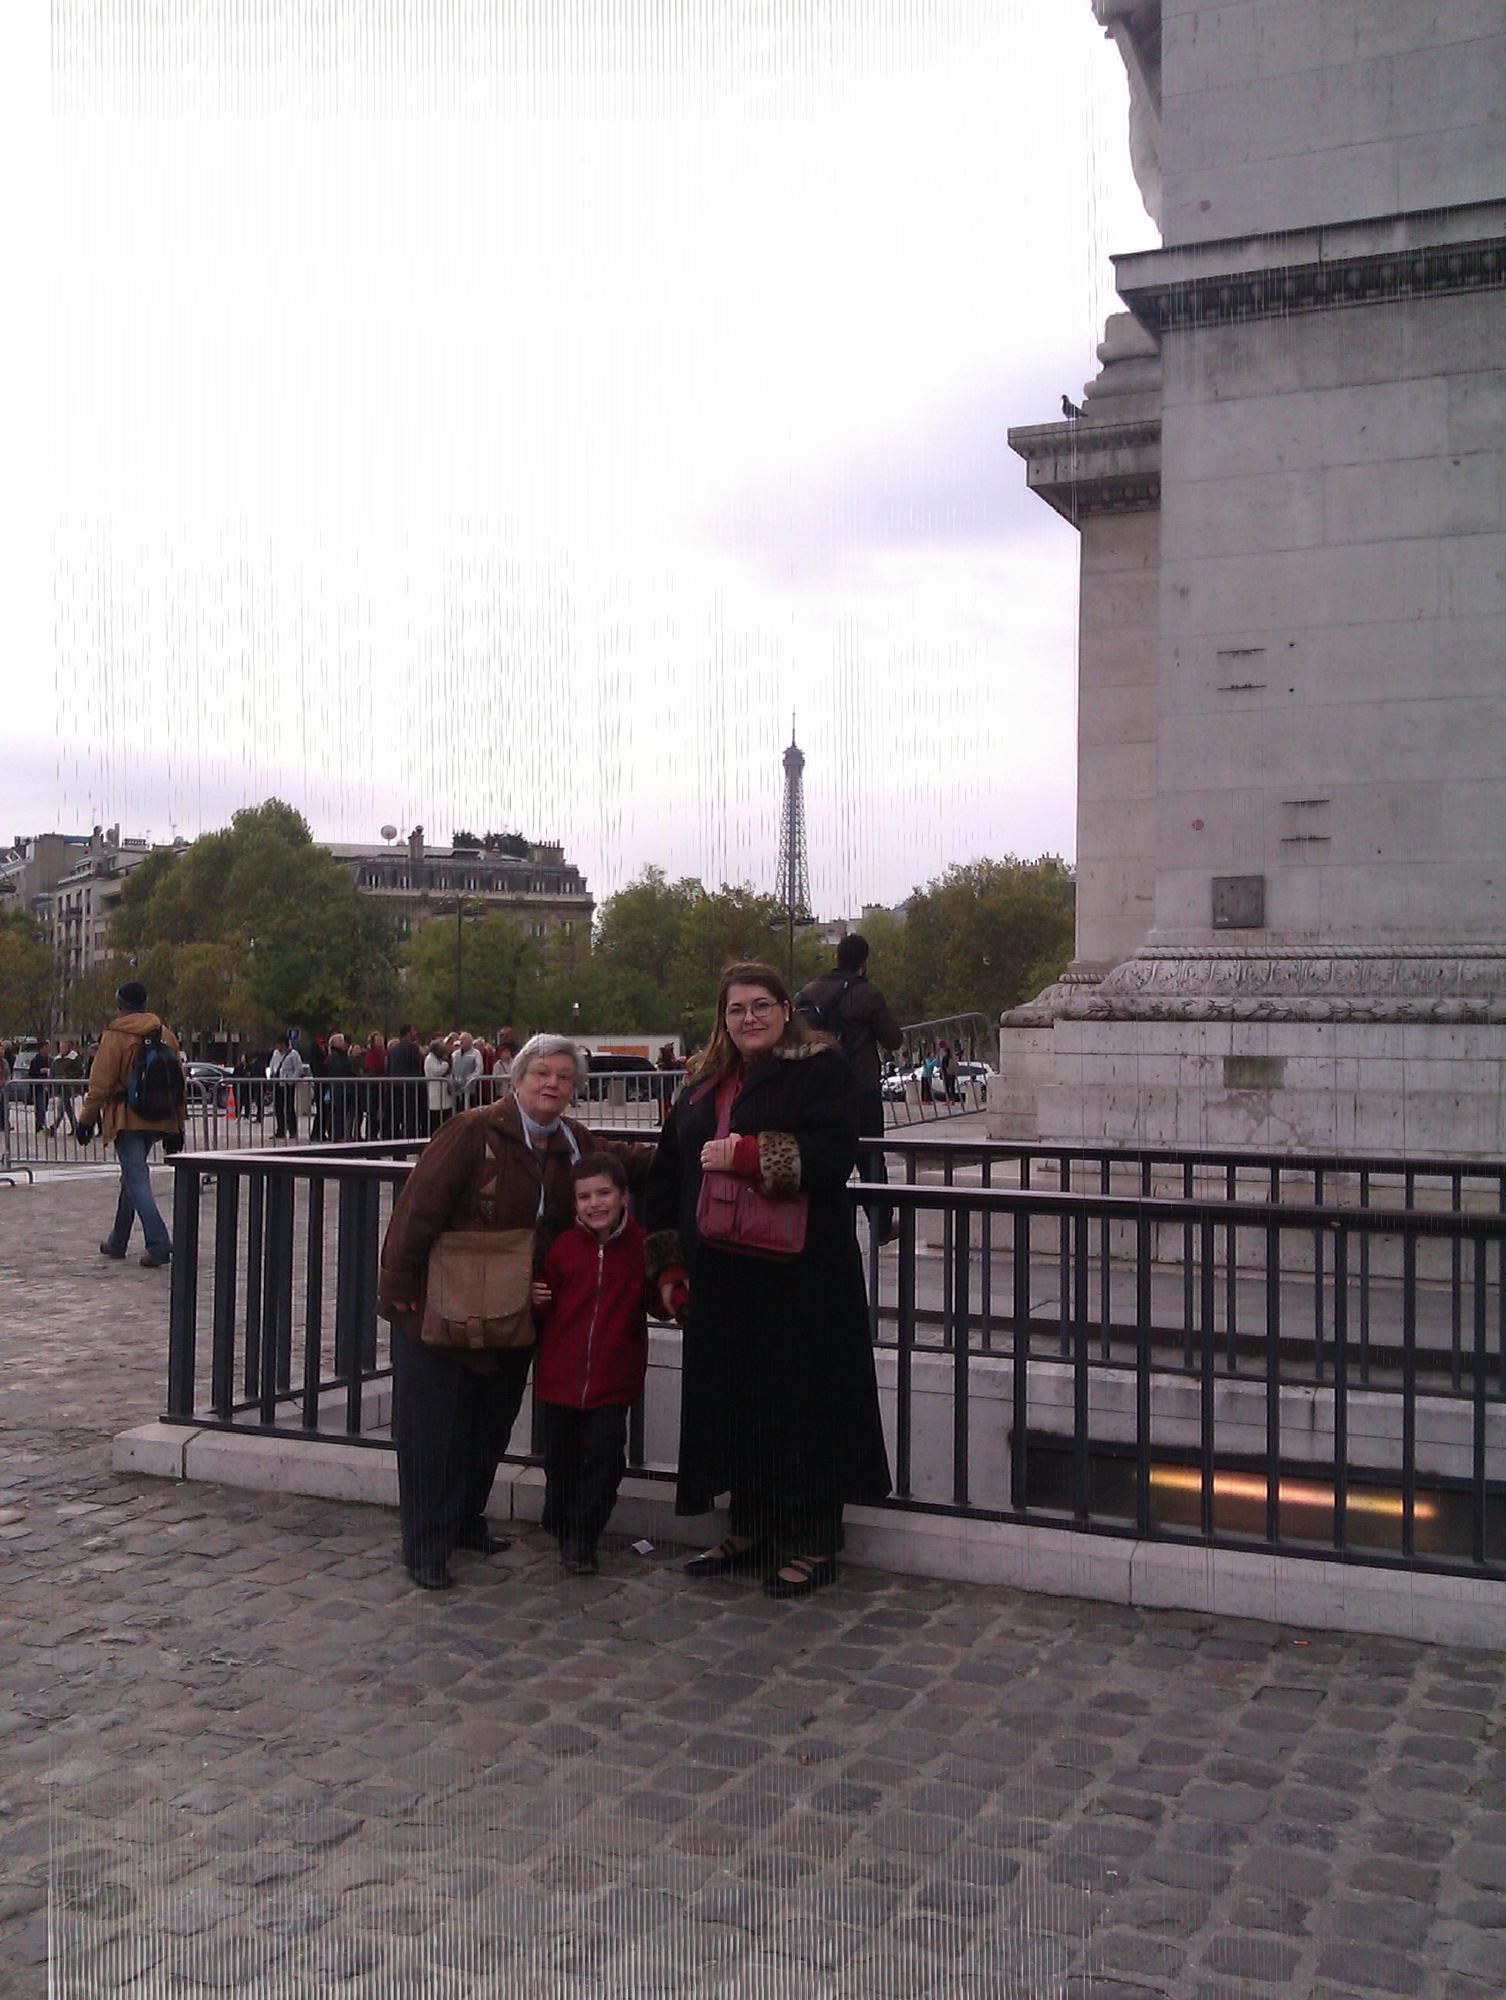 http://ralsina.me/galleries/london-paris-2012/IMAG0845.jpg